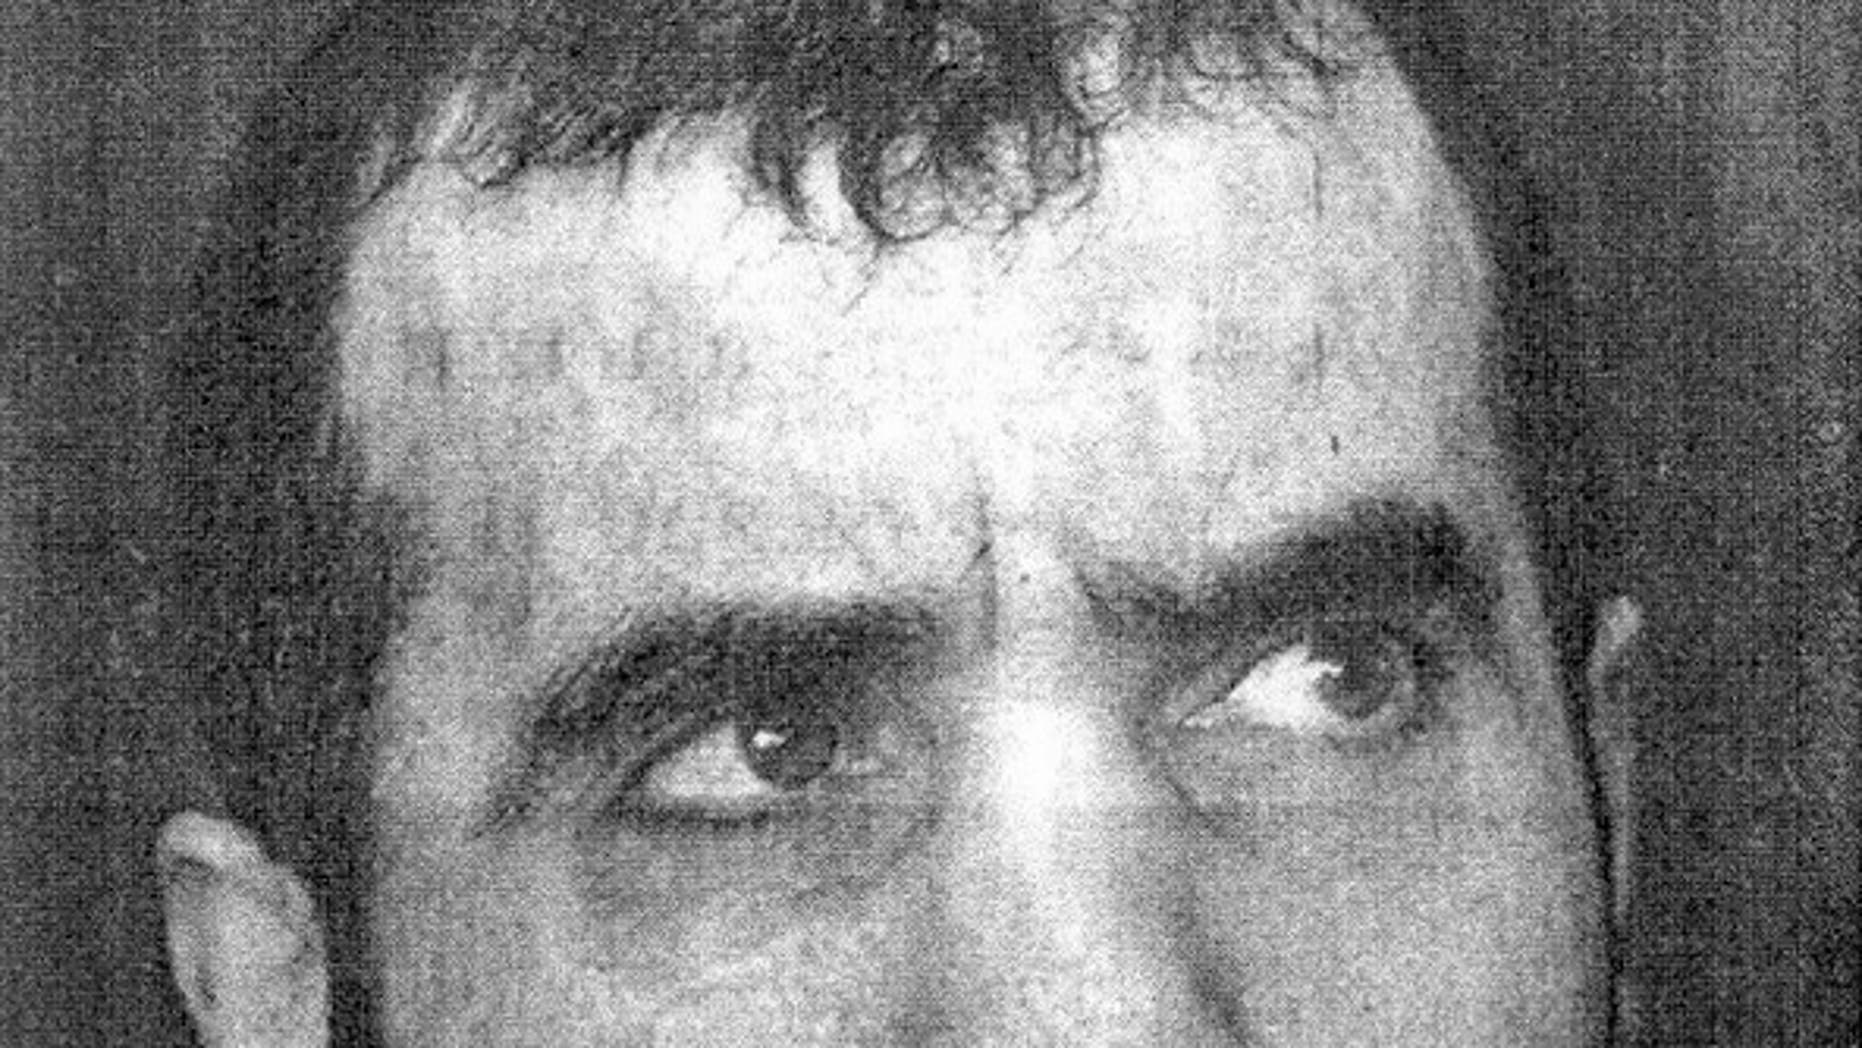 This undated image provided by the FBI shows Fawzi Ayoub. His name appears on the FBI's Most Wanted Terrorist list, but reports from Lebanon said he was killed in Syrian fighting in May 2014. The FBI said Tuesday, June 10, 2014, that it was investigating the reports of Ayoub's death.  (AP Photo/FBI)